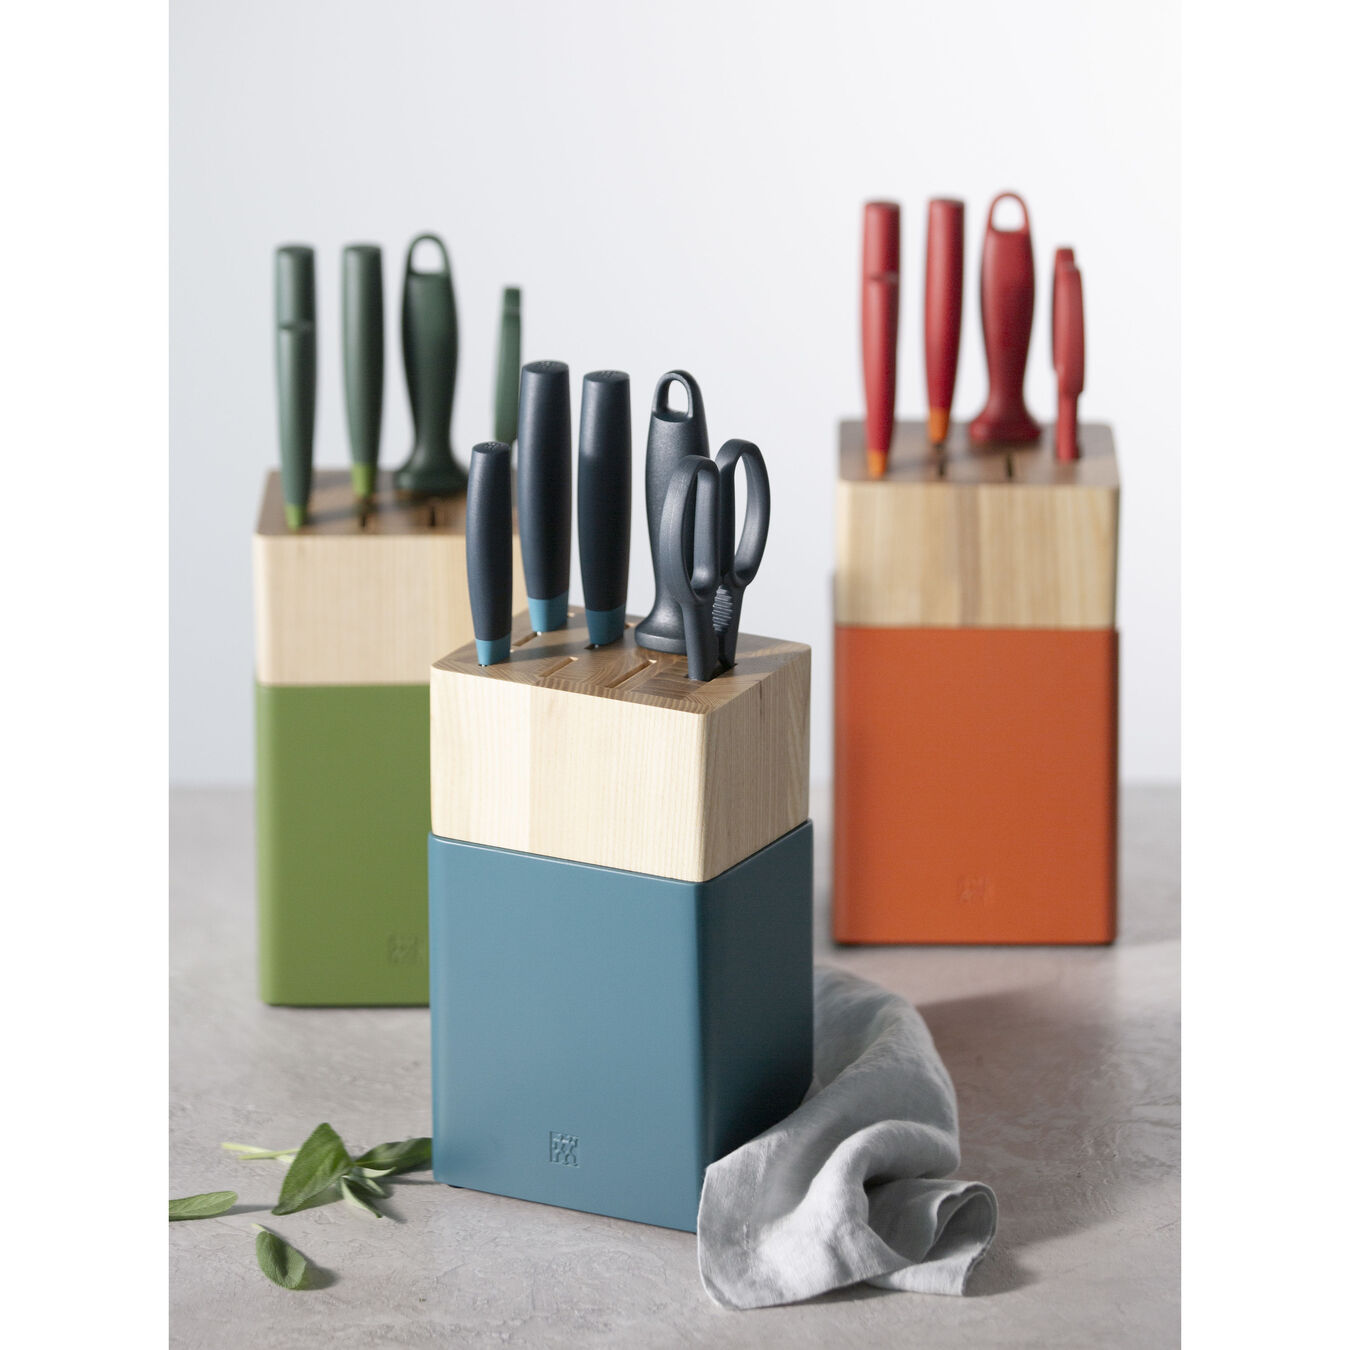 8-pc Knife Block Set - Blueberry Blue,,large 5